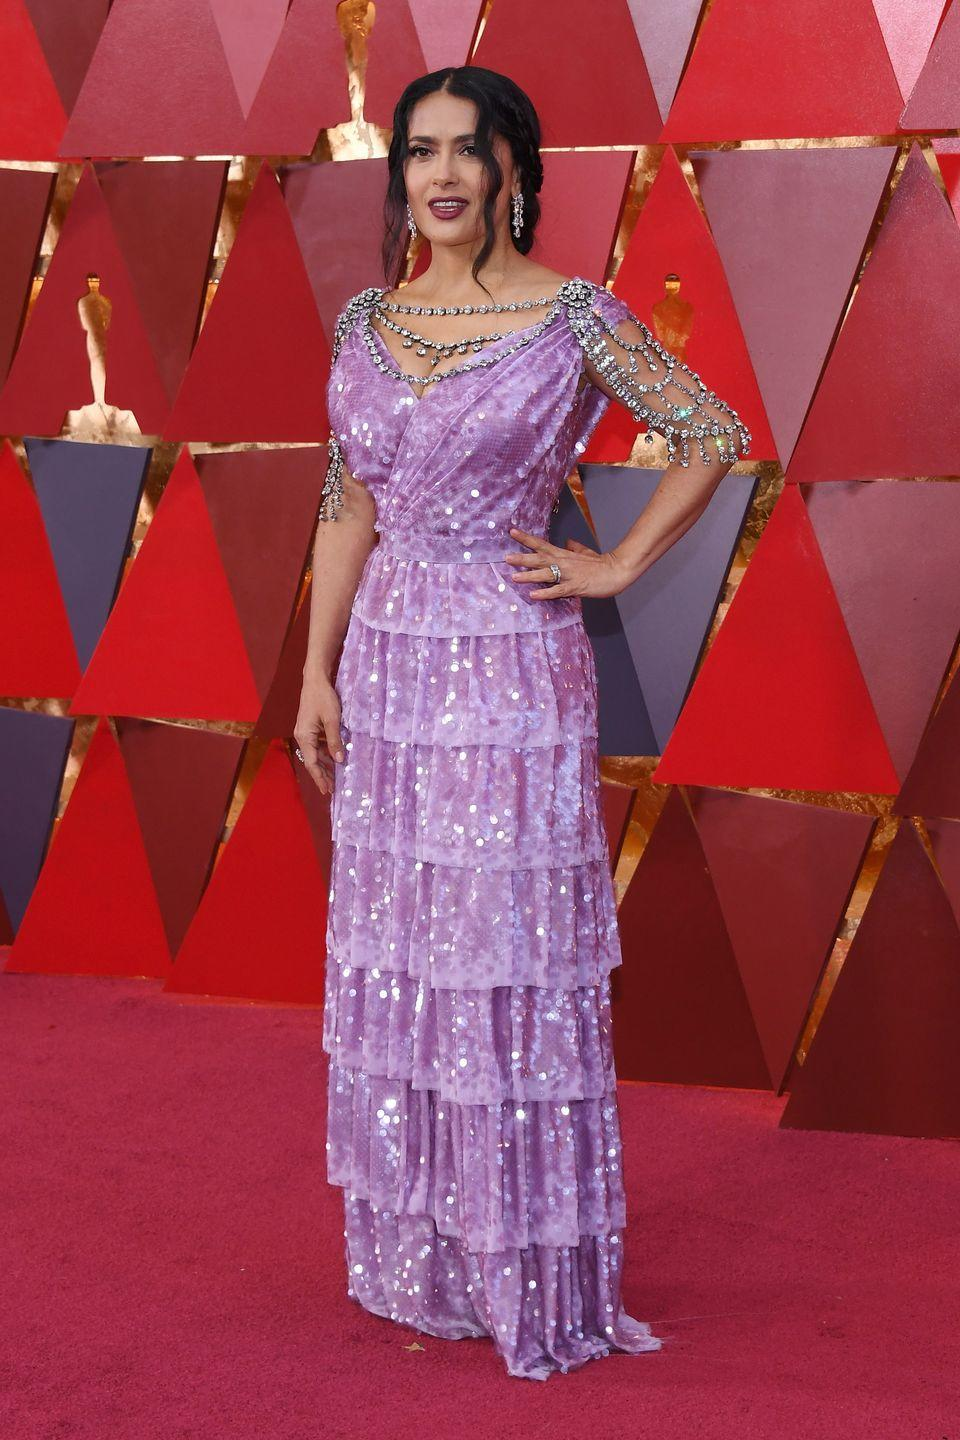 <p>The jewels on Salma Hayek's lavender sequin gown she wore to the Oscars in 2018 remind us of the <em>Hercules </em>princess. Salma even styled her hair with wavy tendrils just like Meg's. </p>